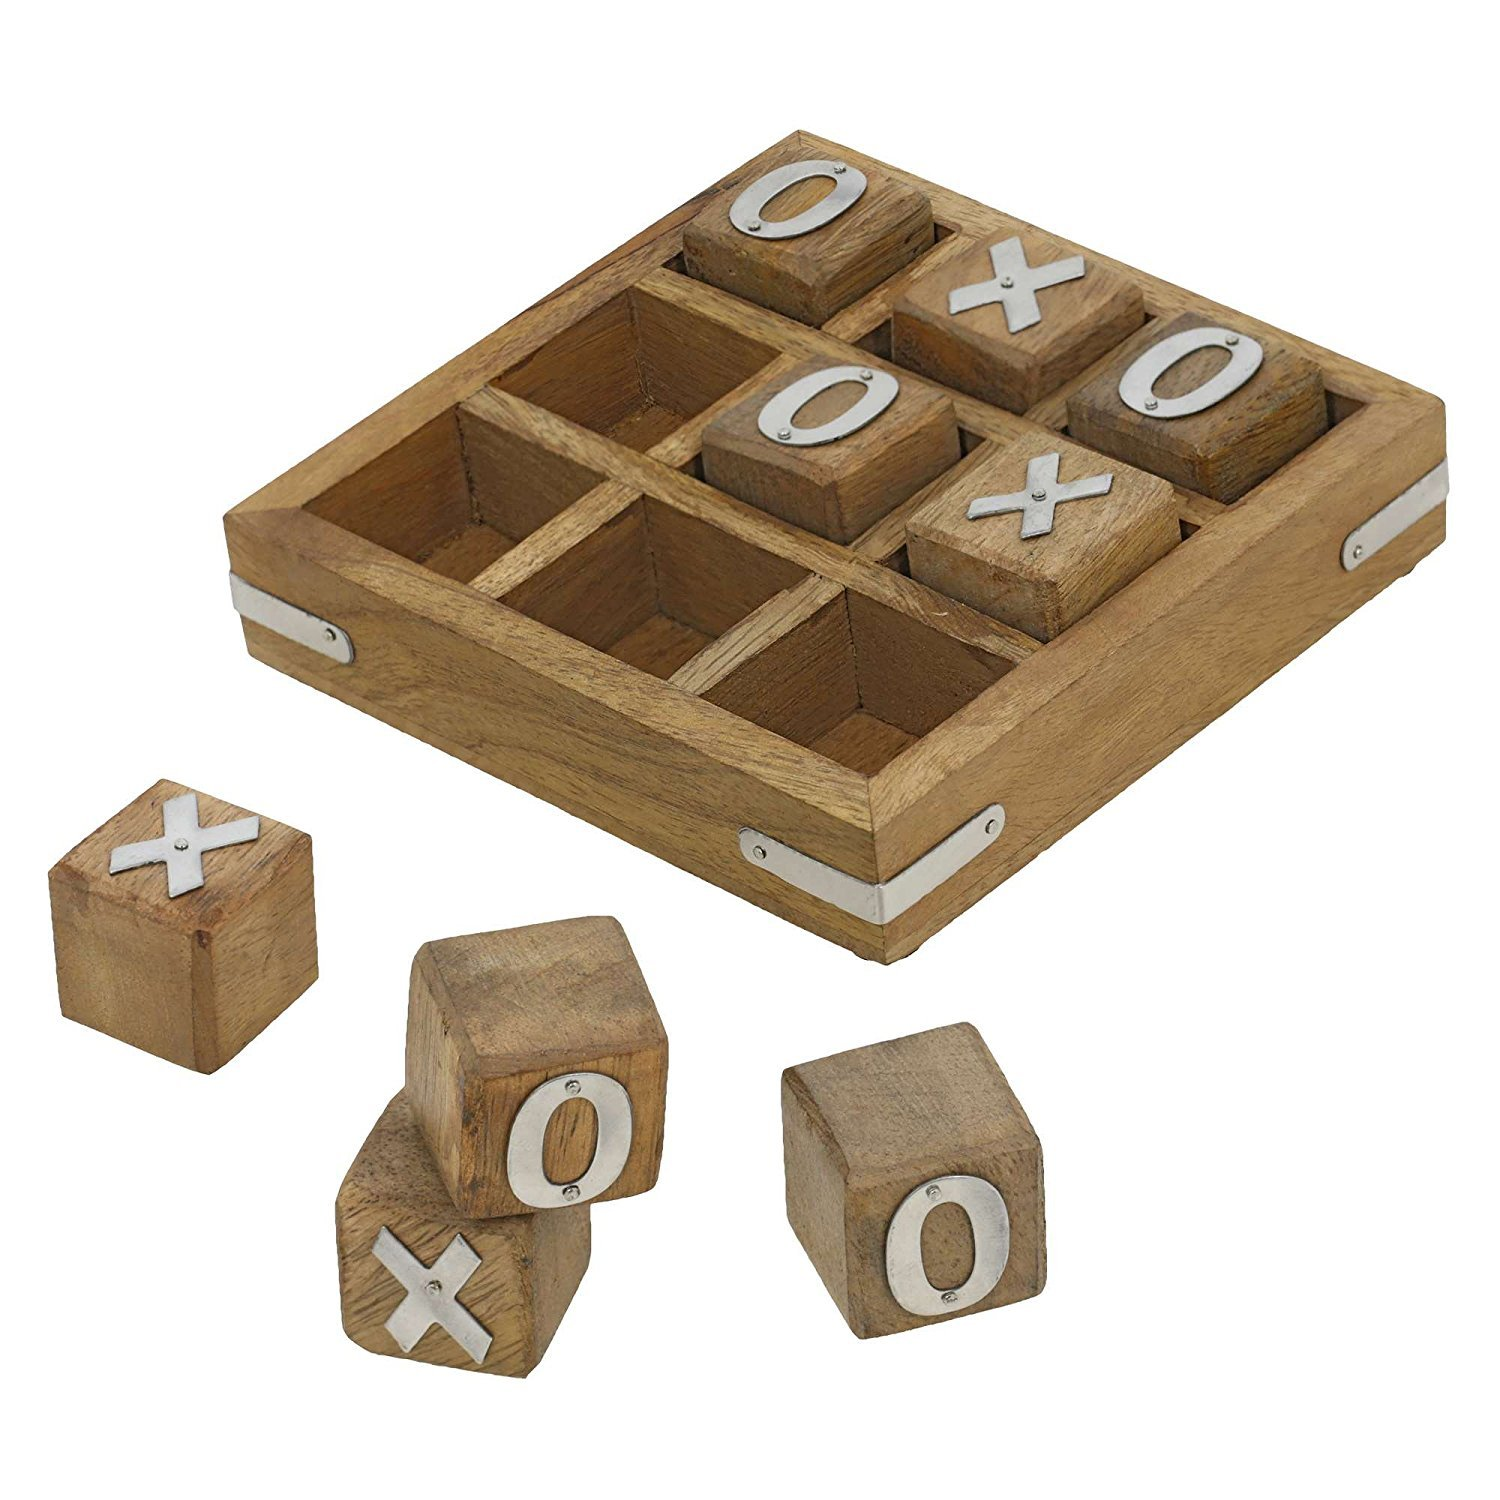 Indian Glance Tic Tac Toe Game Wooden Set for Kids Children - Travel Board Brain Teaser Game - Unique Gifts for Kids for All Occasions by Indian Glance